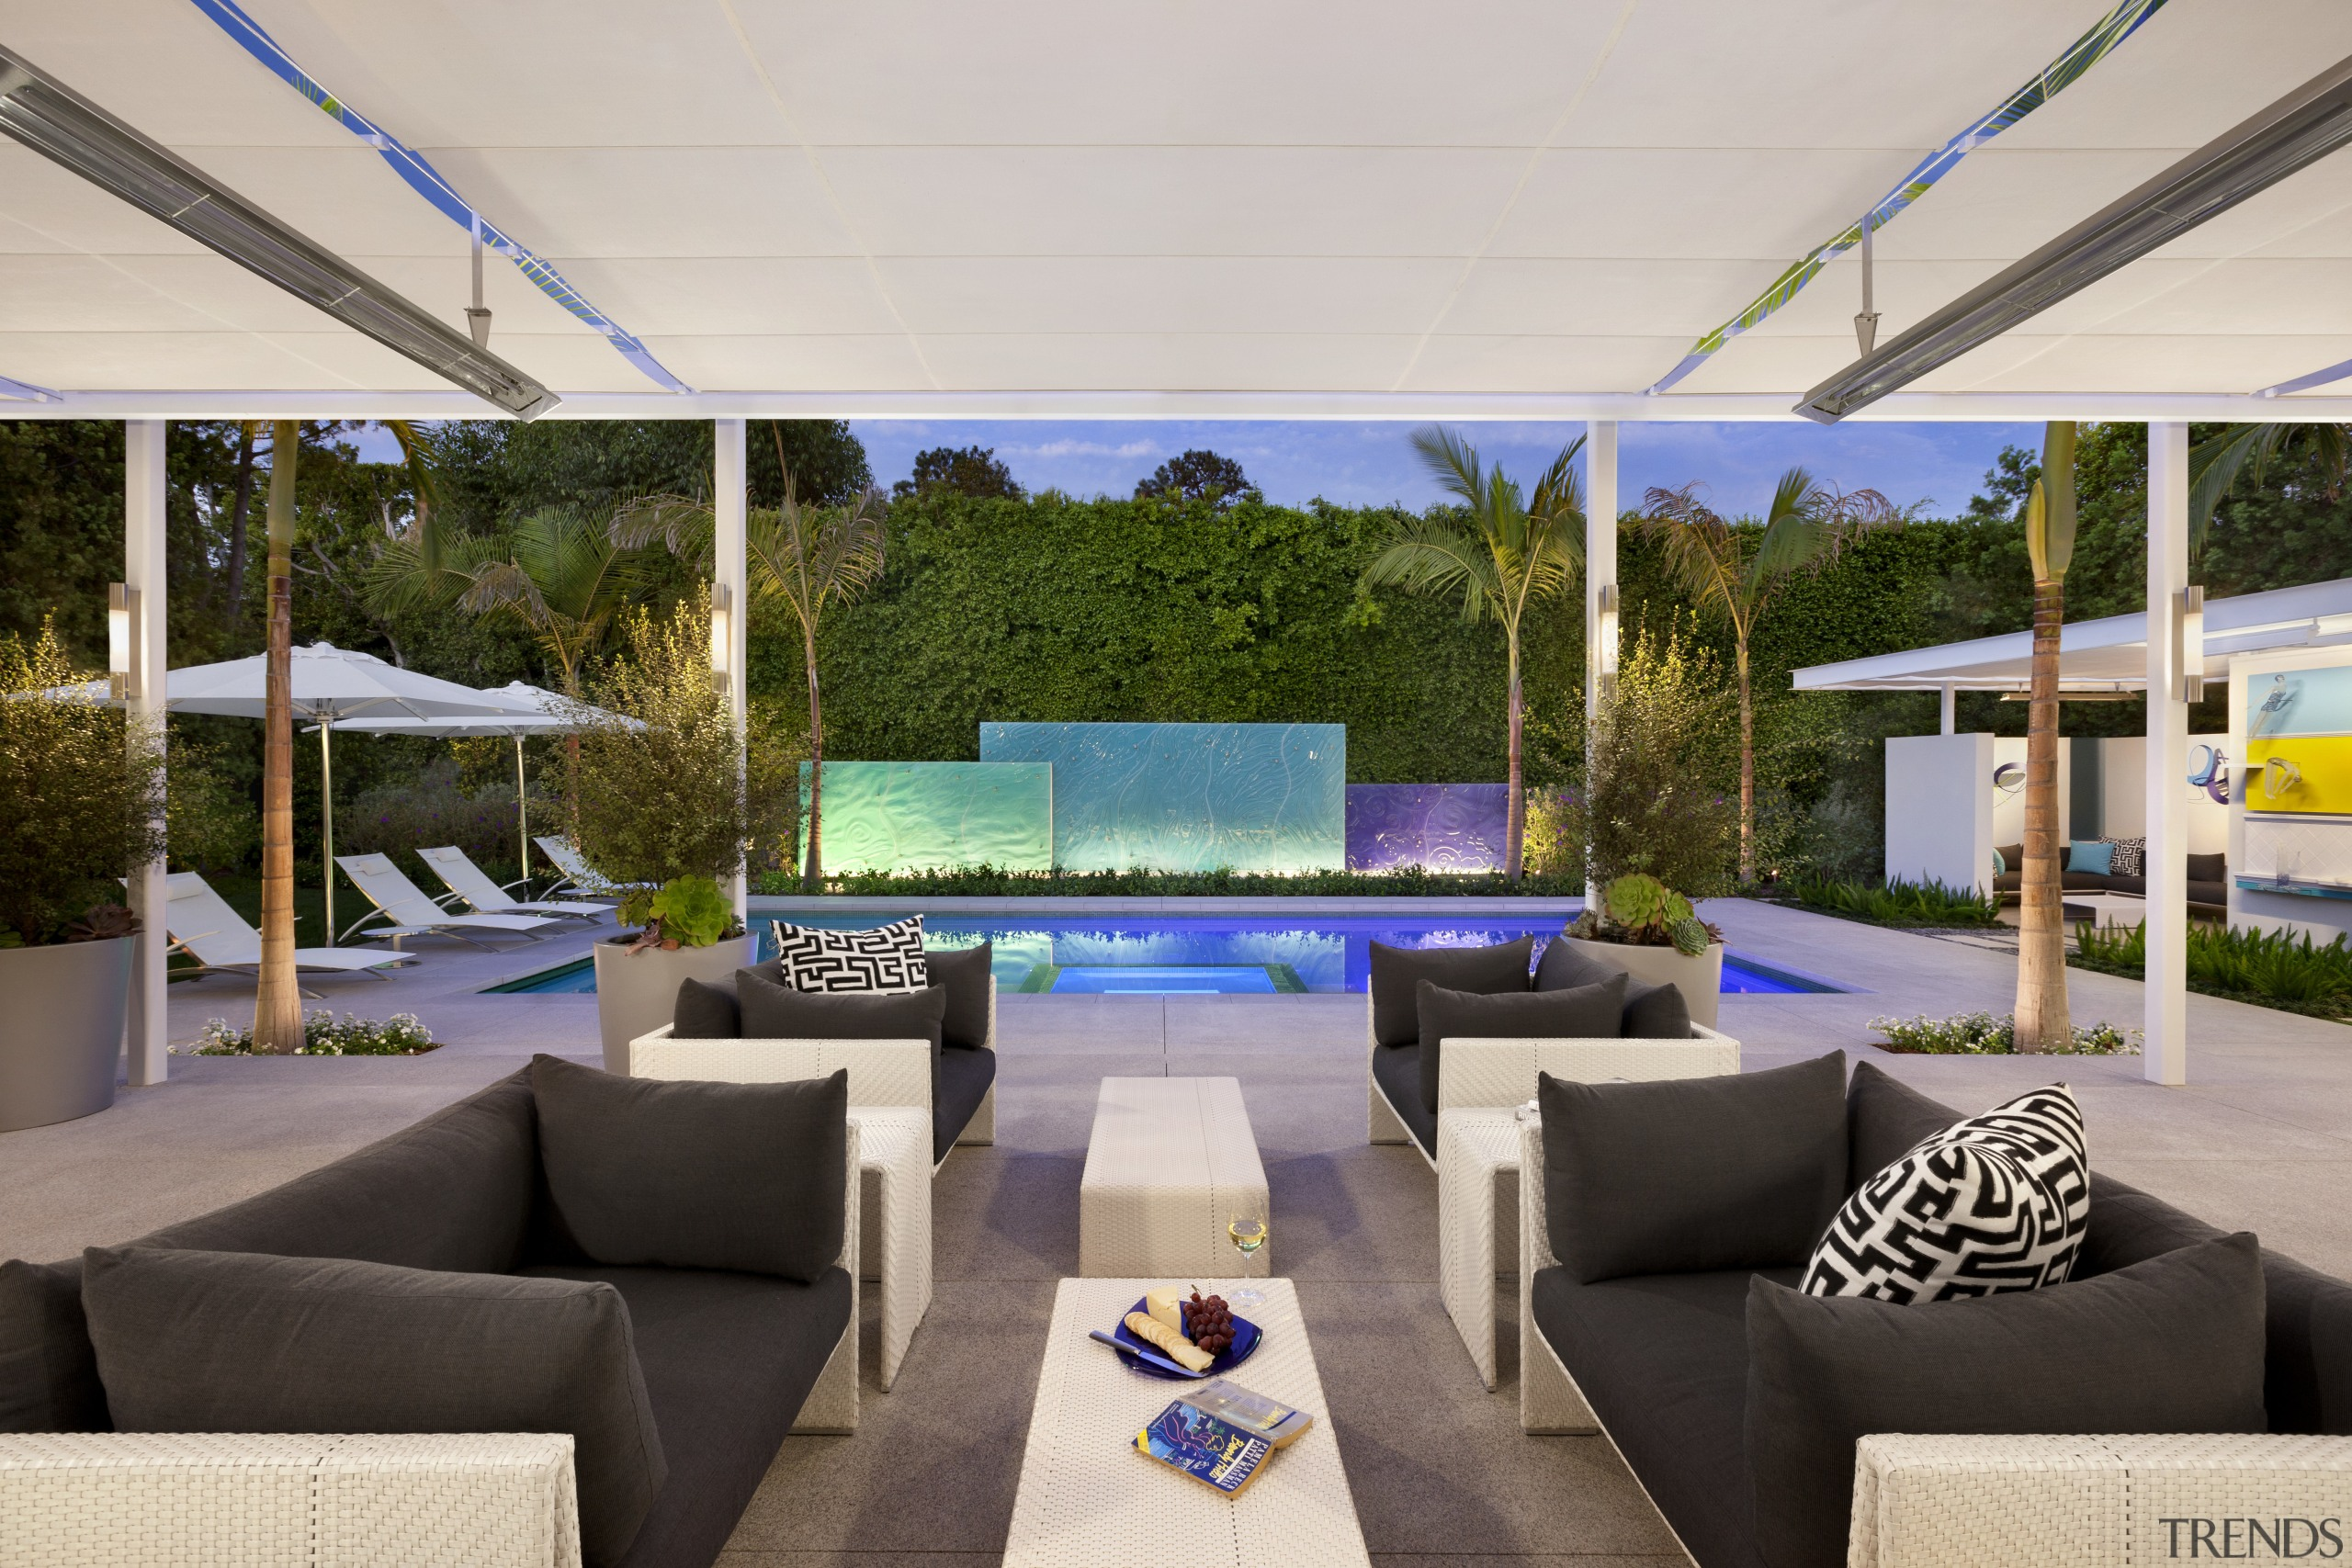 There are dramatic sightlines from the interiors of estate, interior design, real estate, gray